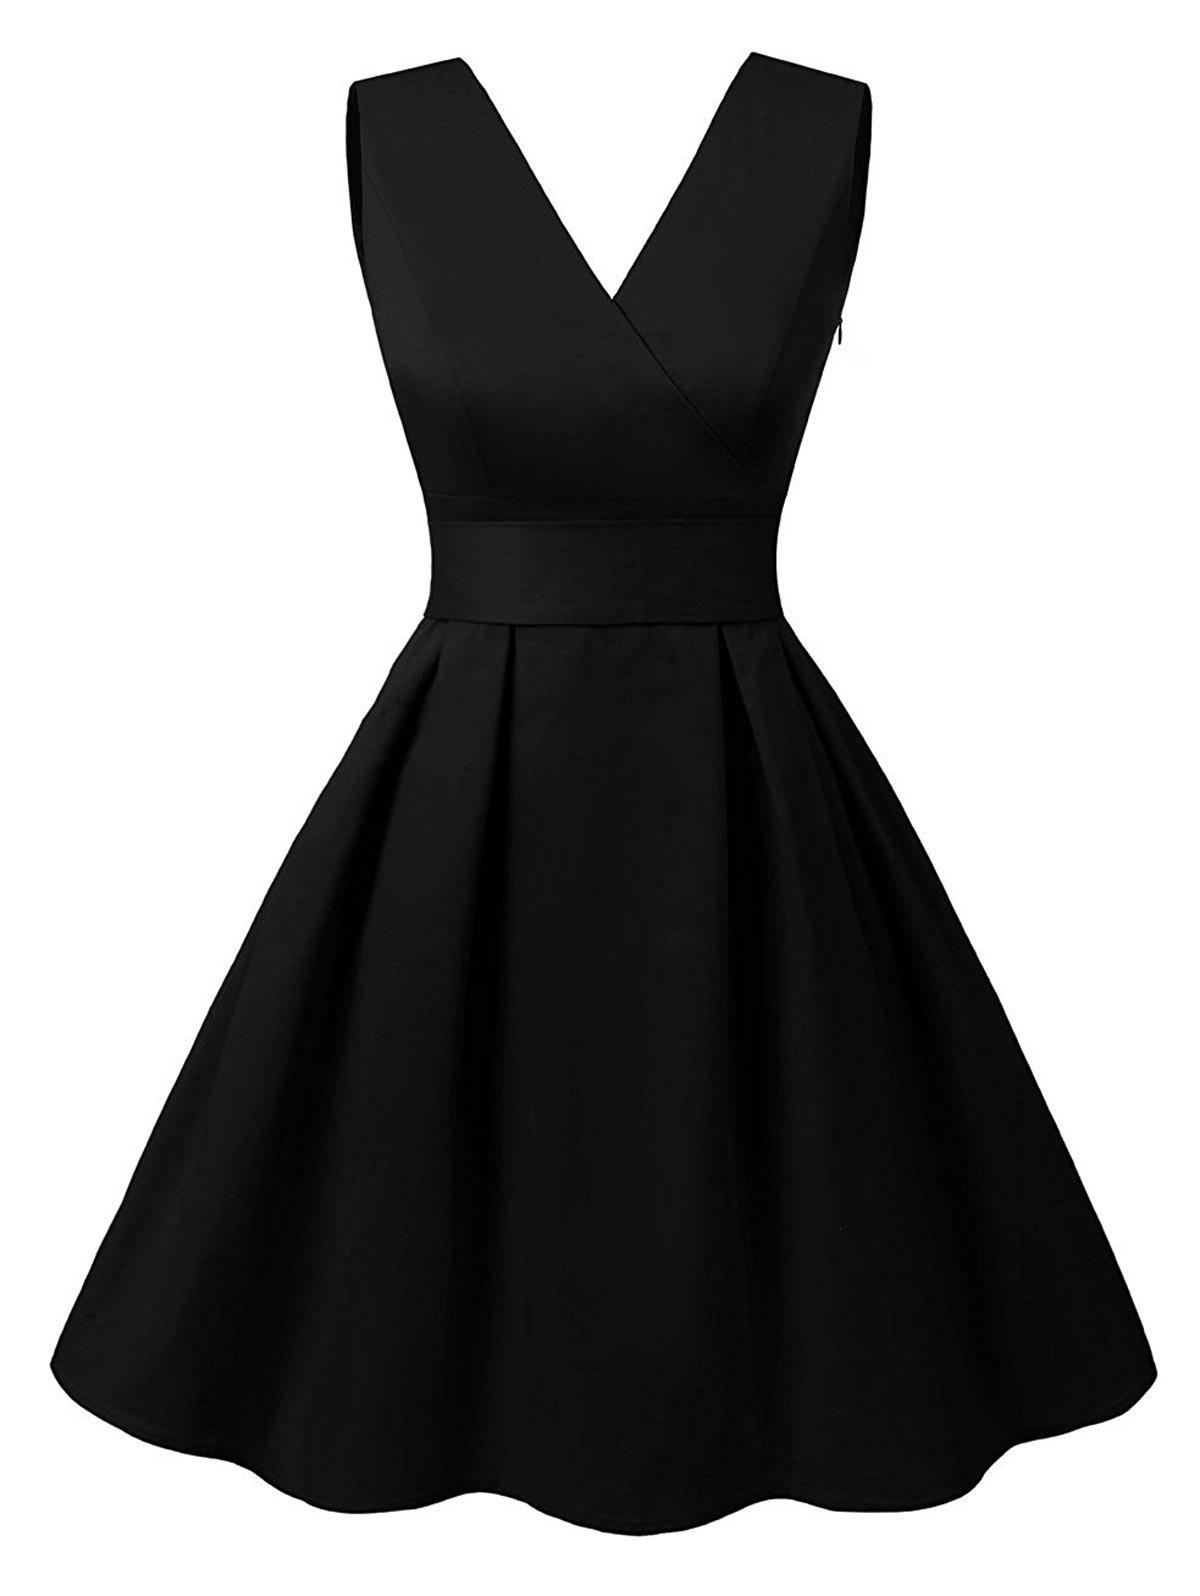 2018 Vintage V Neck Cut Out Pin Up Dress Black S In Vintage Dresses